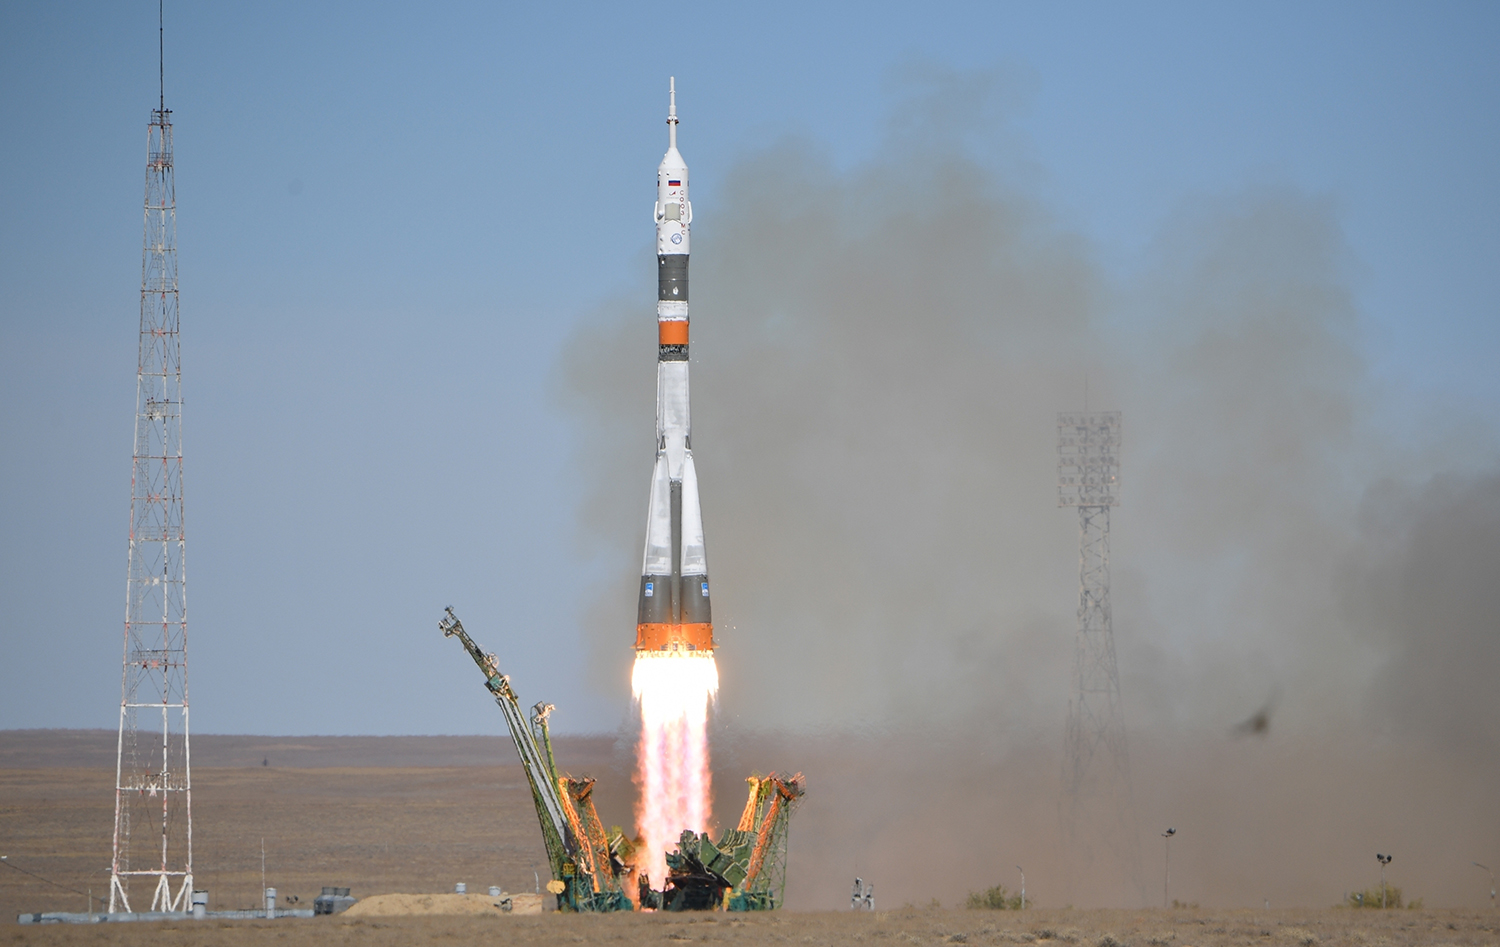 MS-10 lifts off on its way to the ISS. The crew would be back on the ground just minutes later.